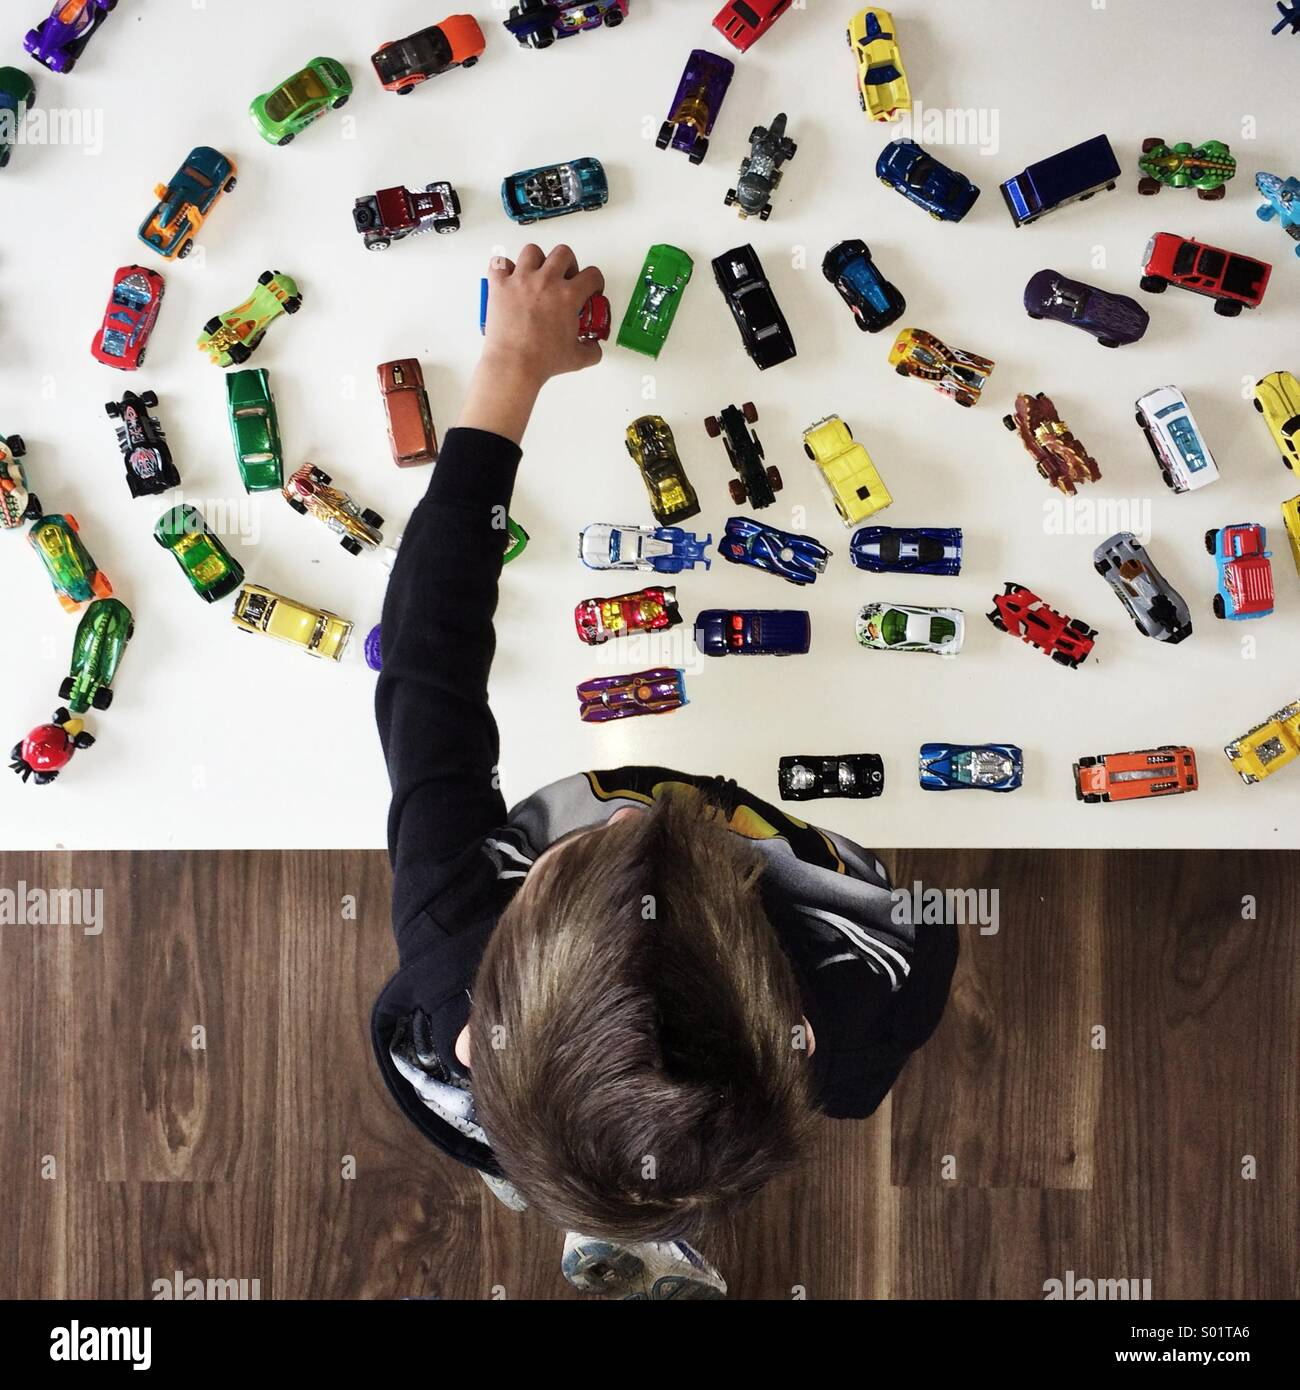 Boy playing wit toy cars - Stock Image